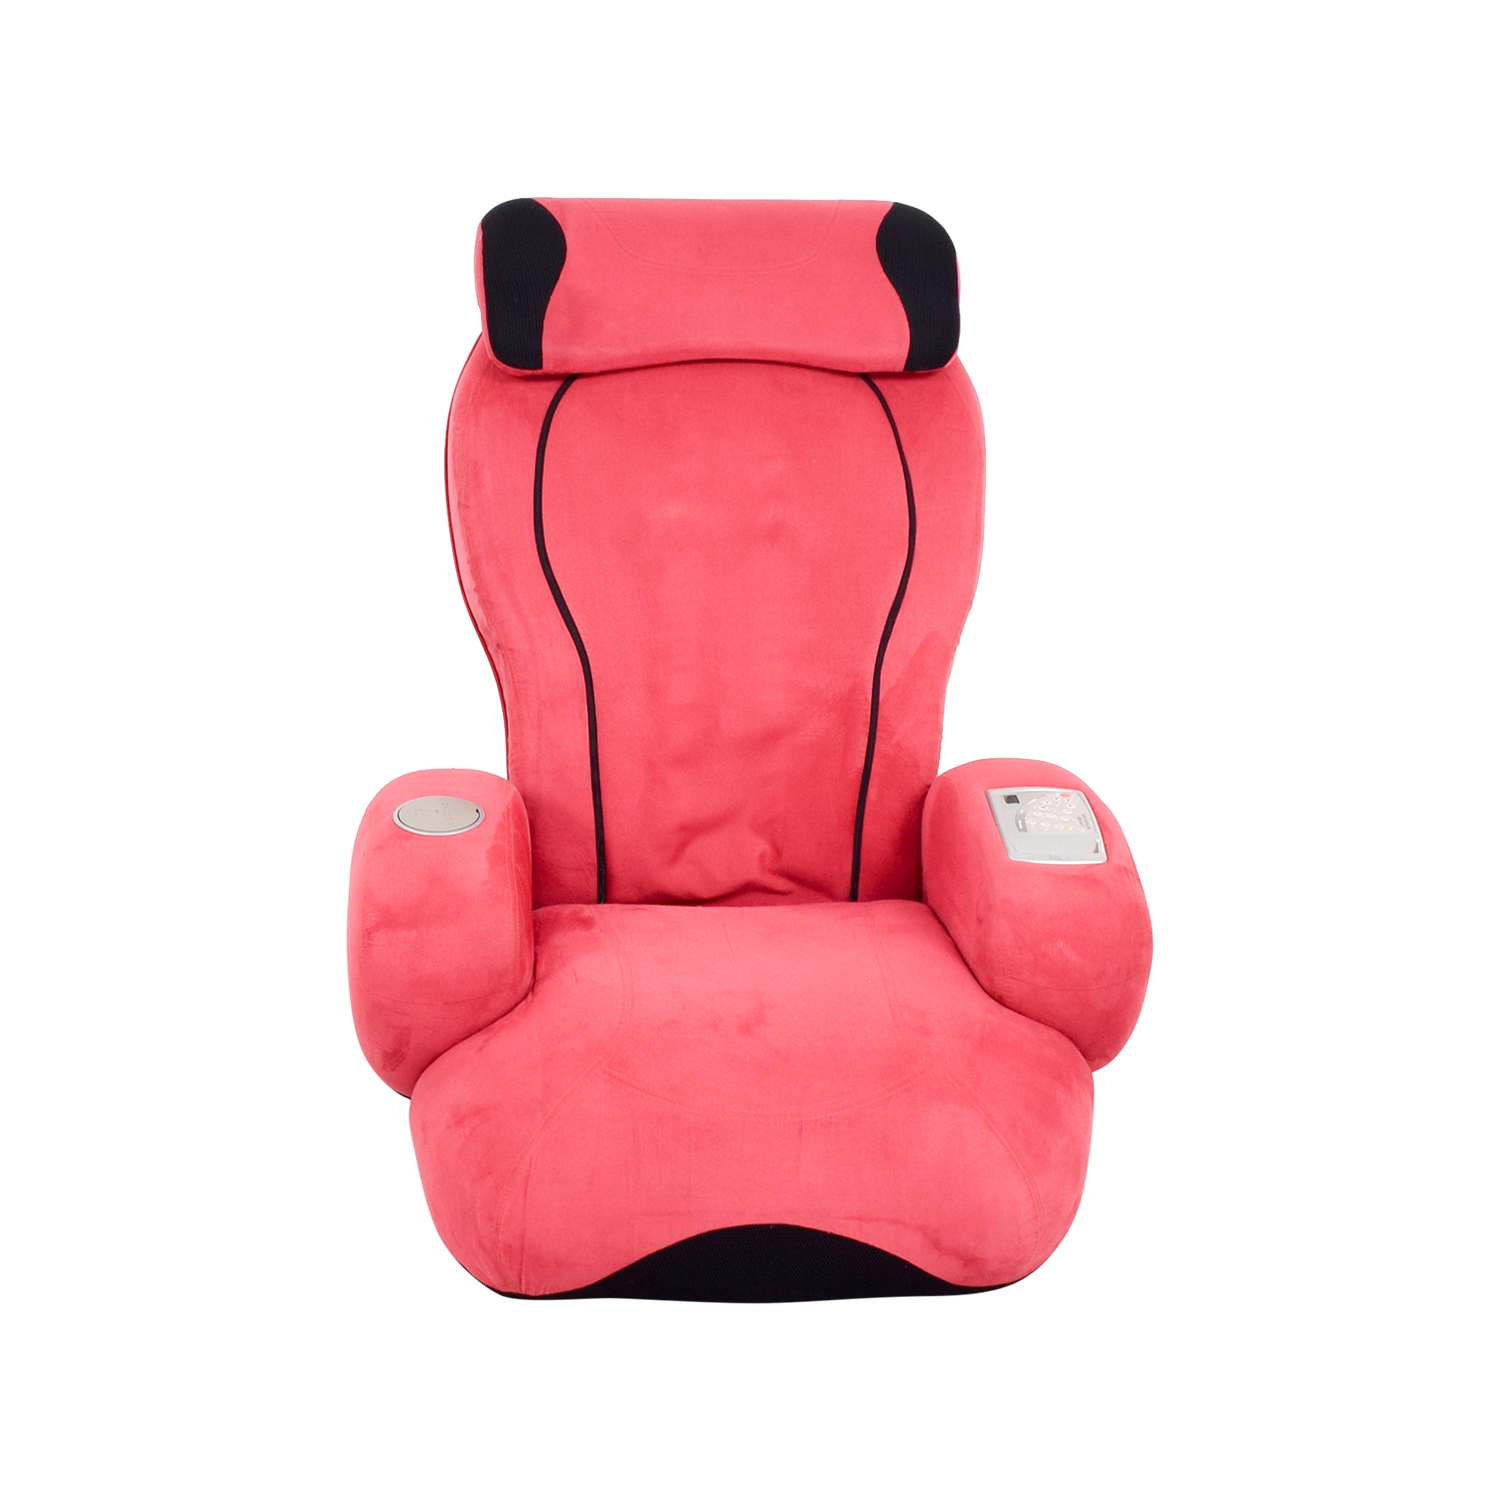 OSIM OSIM Red Massage Chair